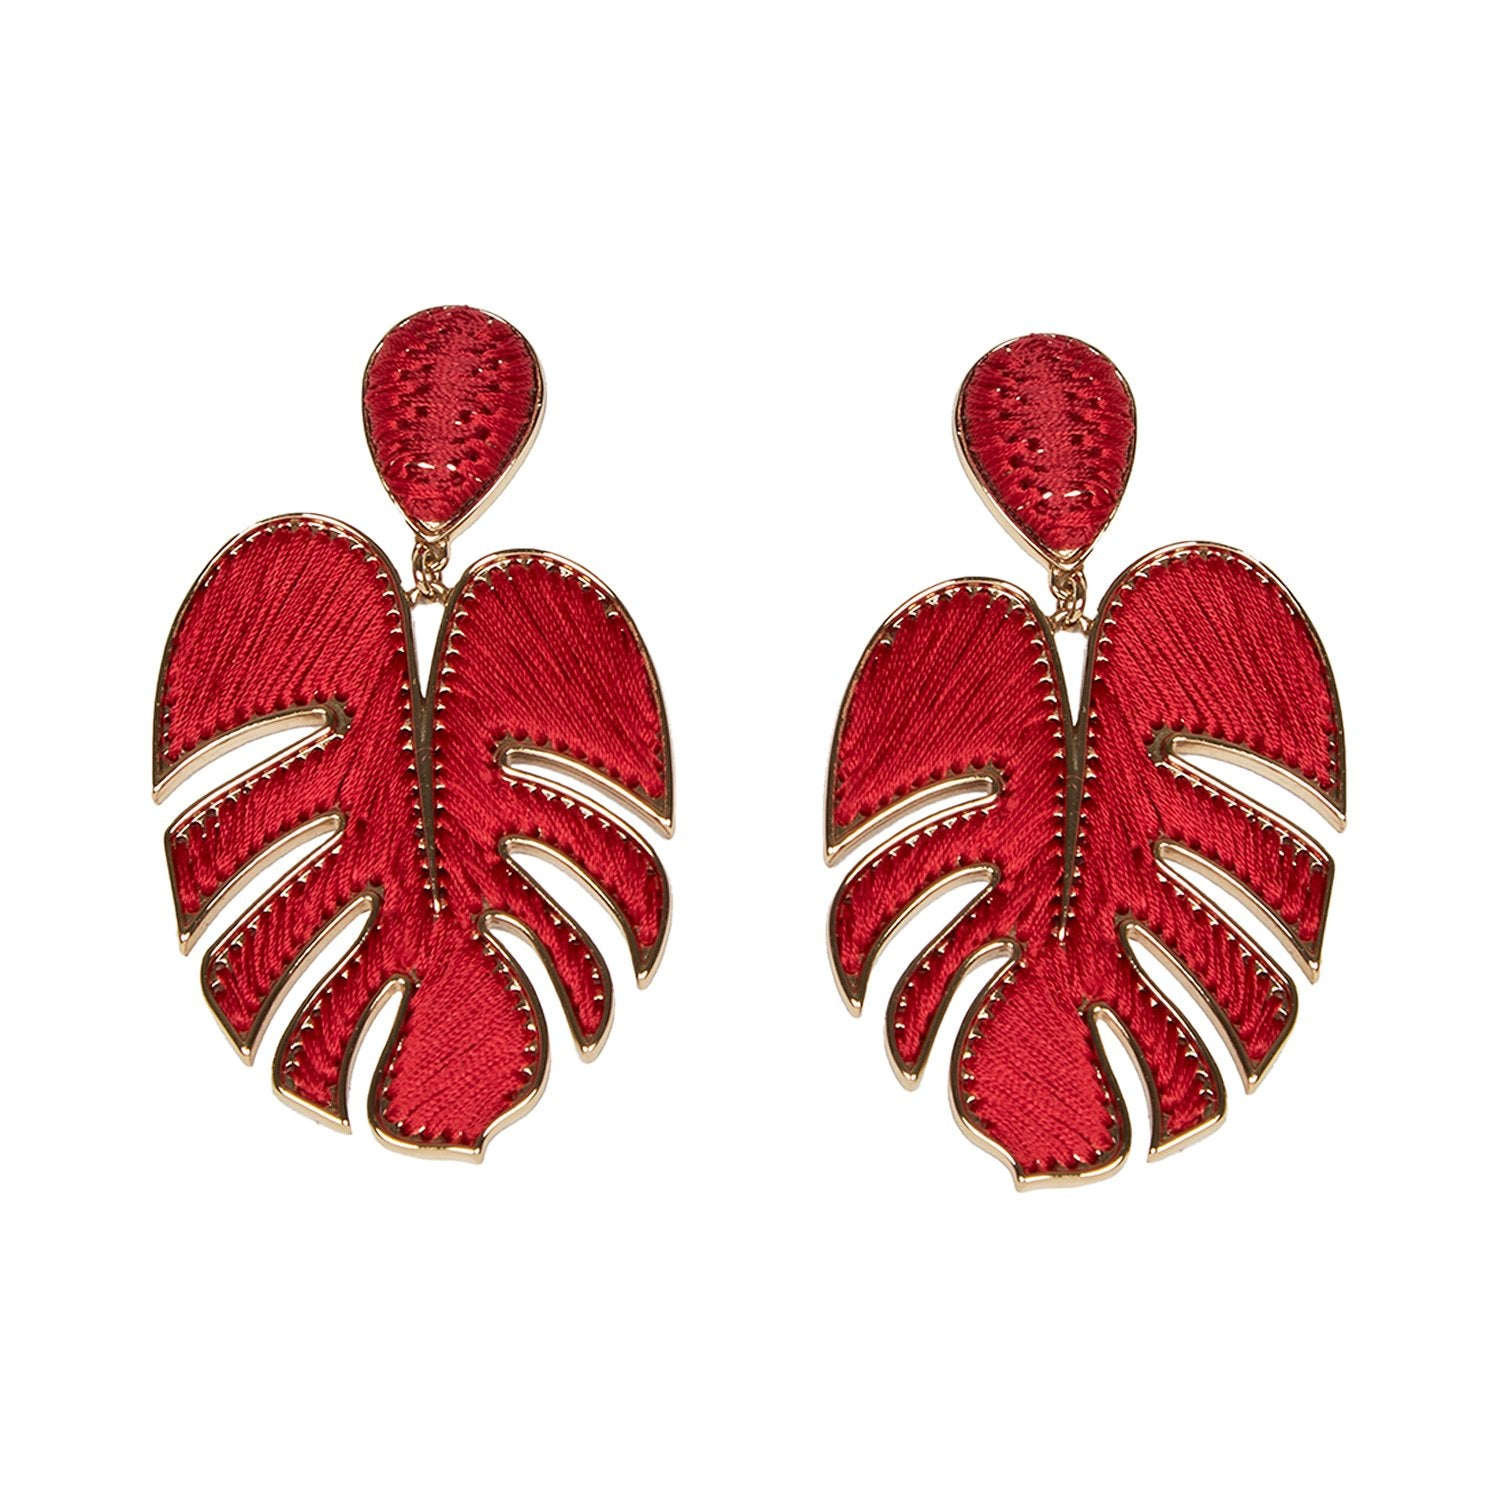 Mignonne Gavigan Palmer Drop Earrings - Red